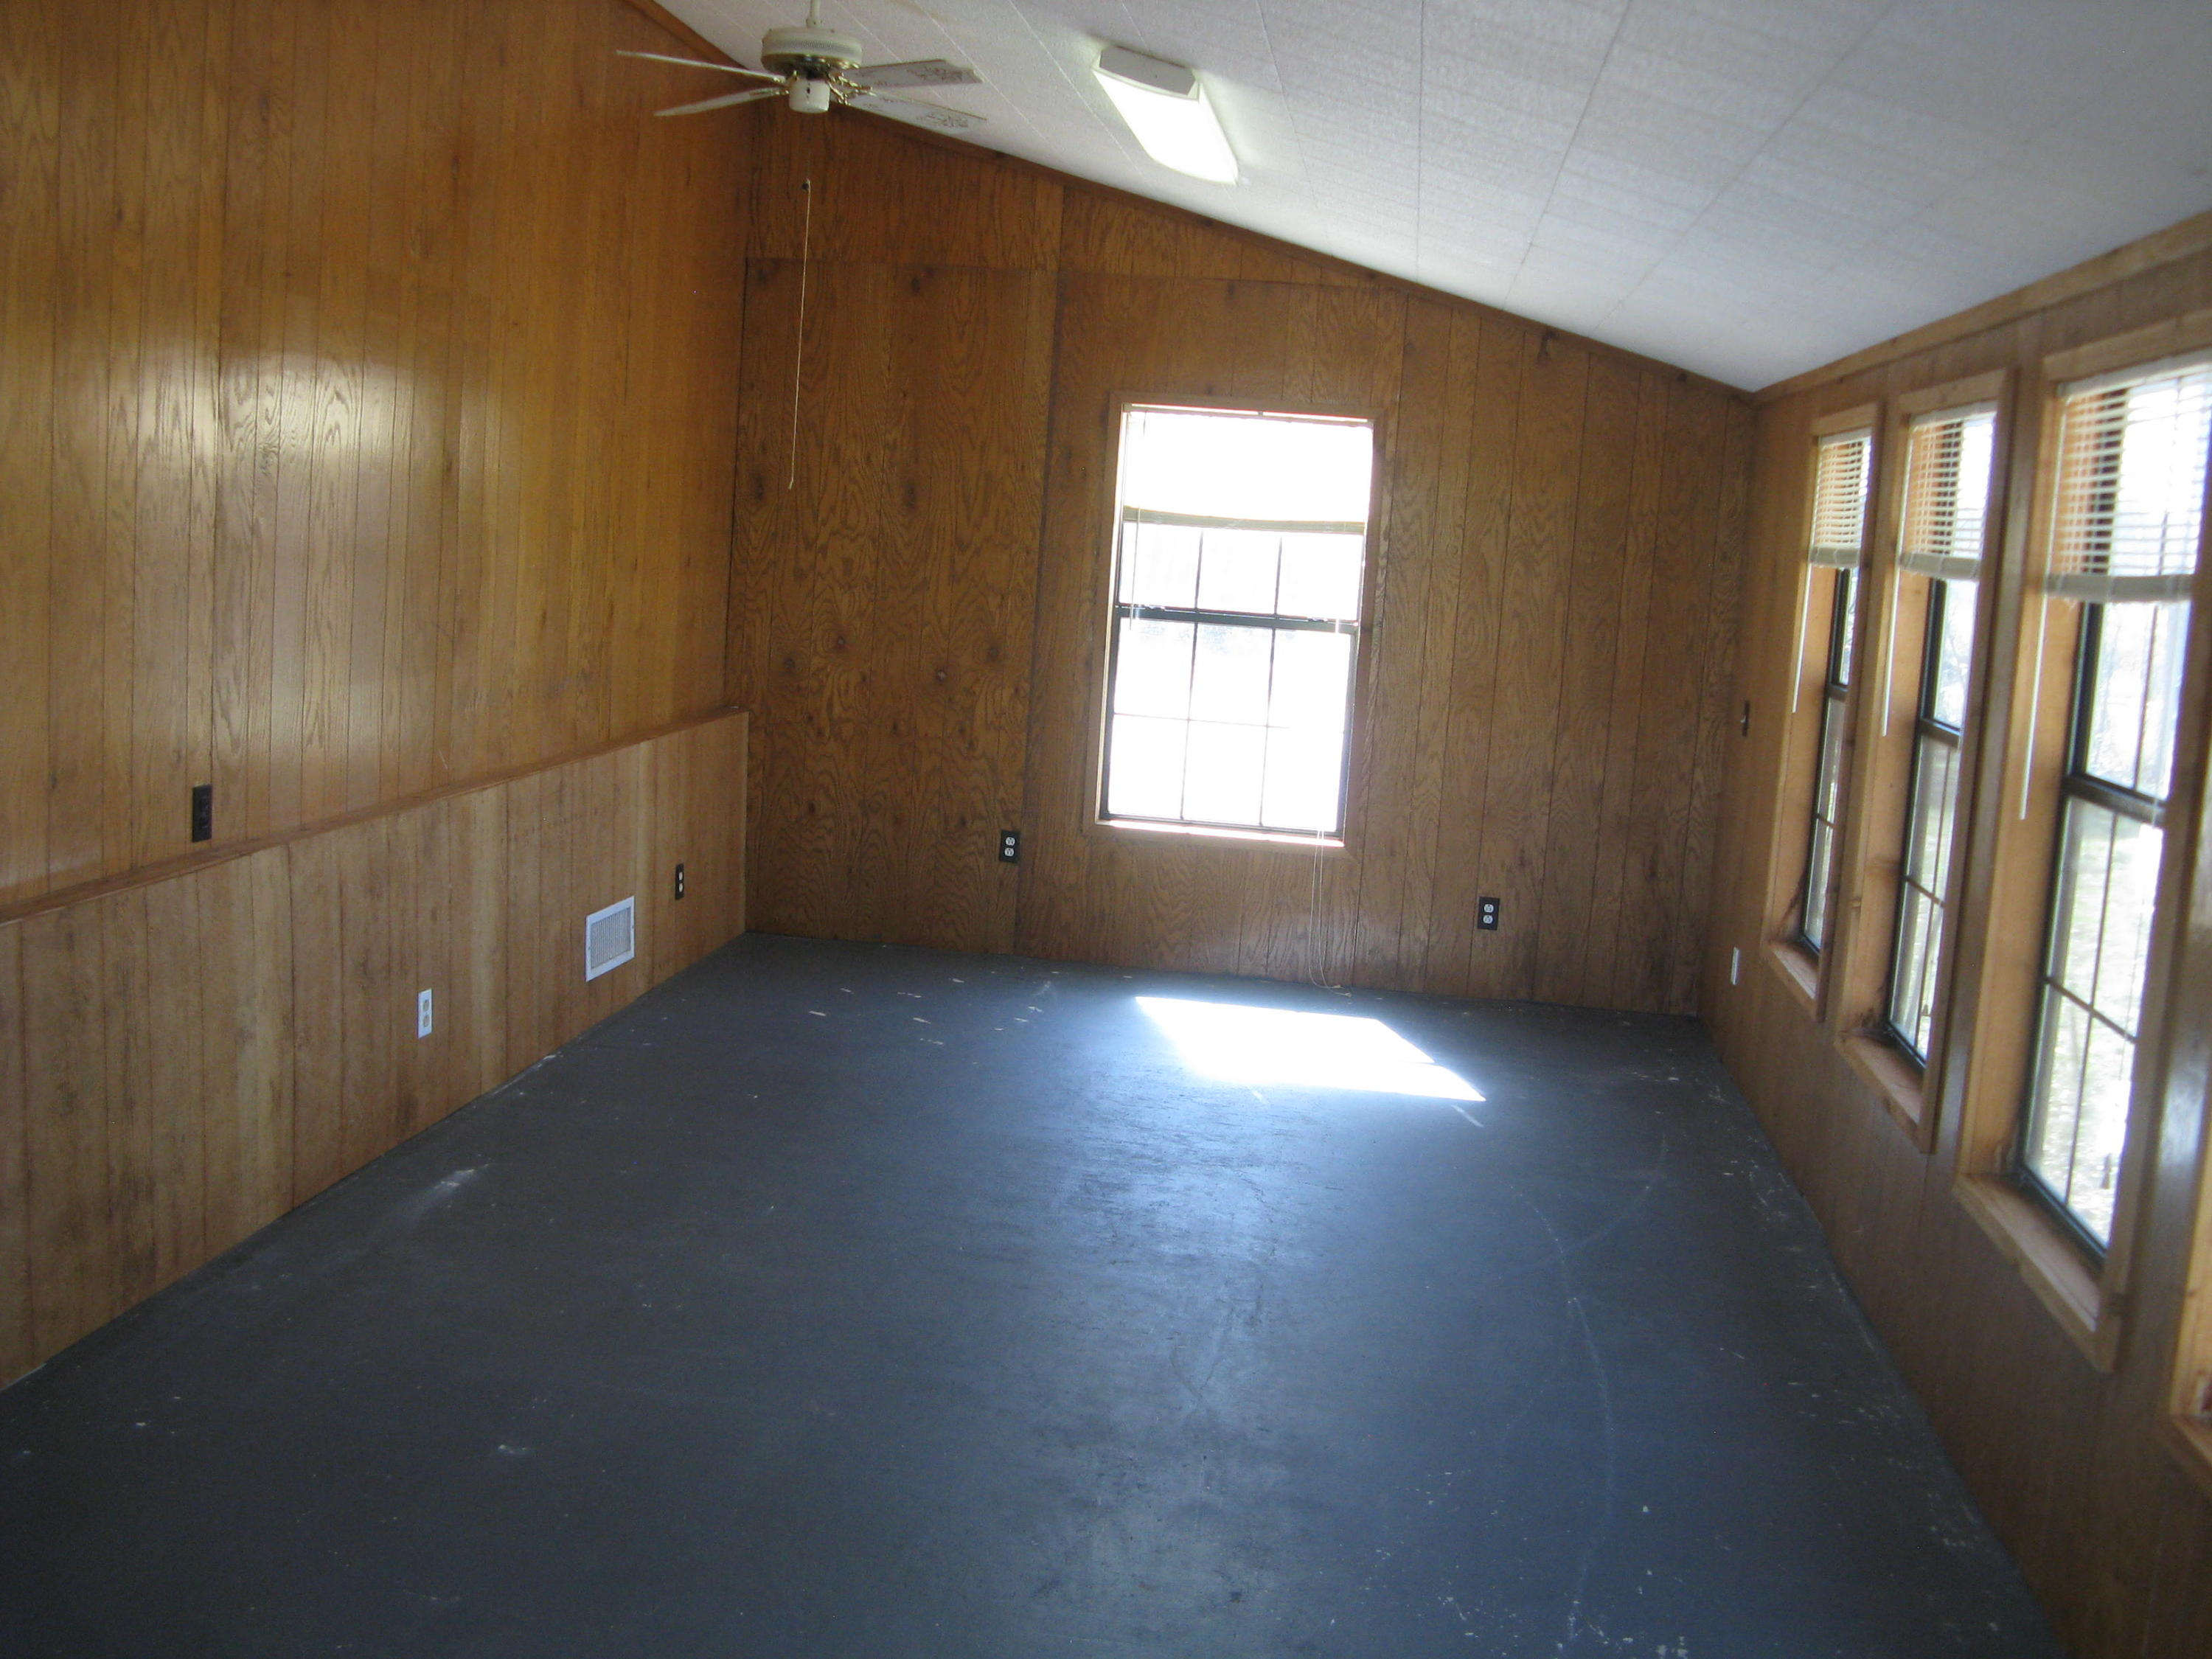 Anacoco home for sale, 6108 HWY 111, Anacoco LA - $790,000